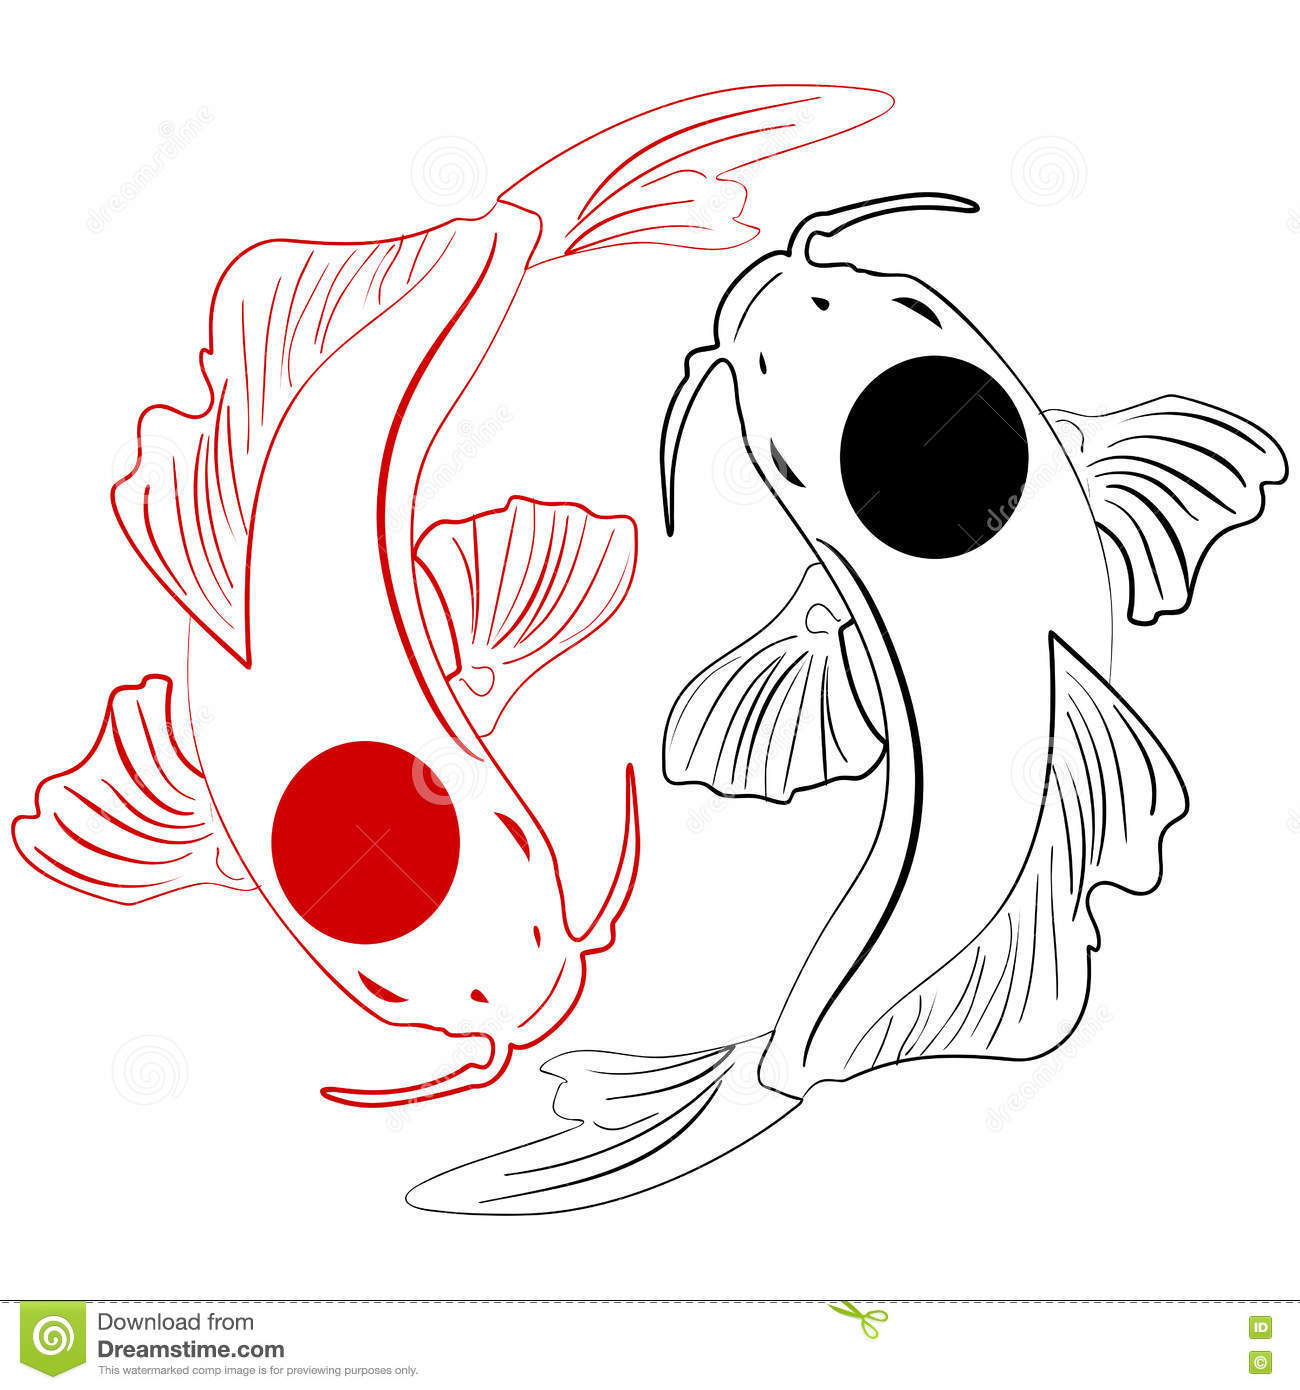 Pisces Koi Fish Chinese Carps Hand Drawn Doodle Stock